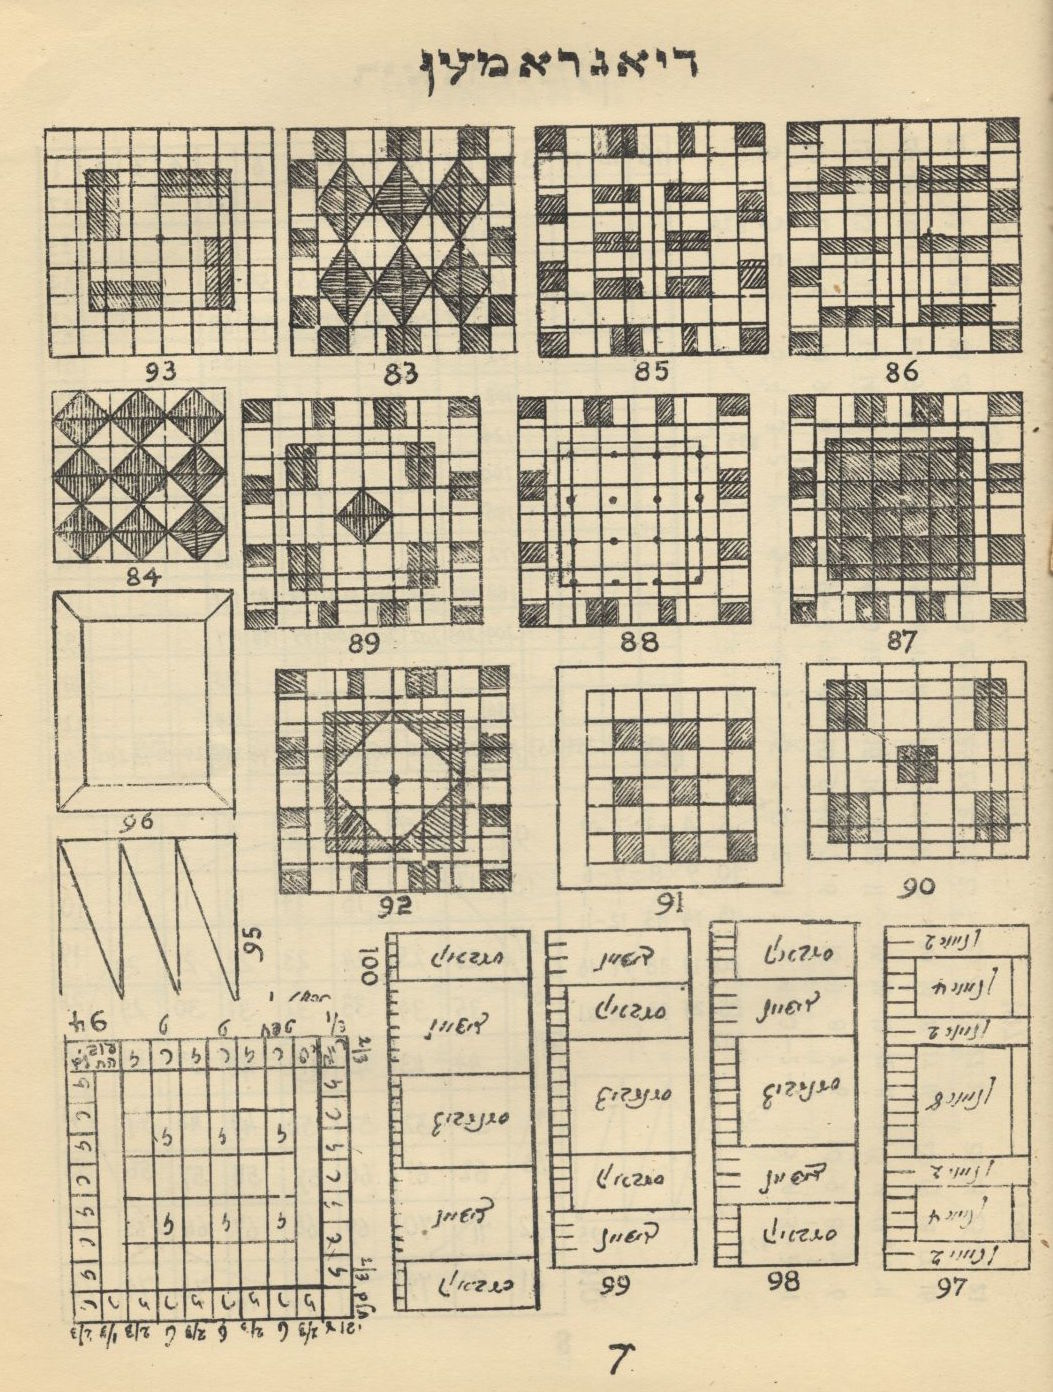 "<p>Illus­tra­tions by A. Vayn­er for Zalkind's Yid­dish trans­la­tion of trac­tate <em>Kilay­im</em> (<span class=""numbers"">1932</span>)</p>"